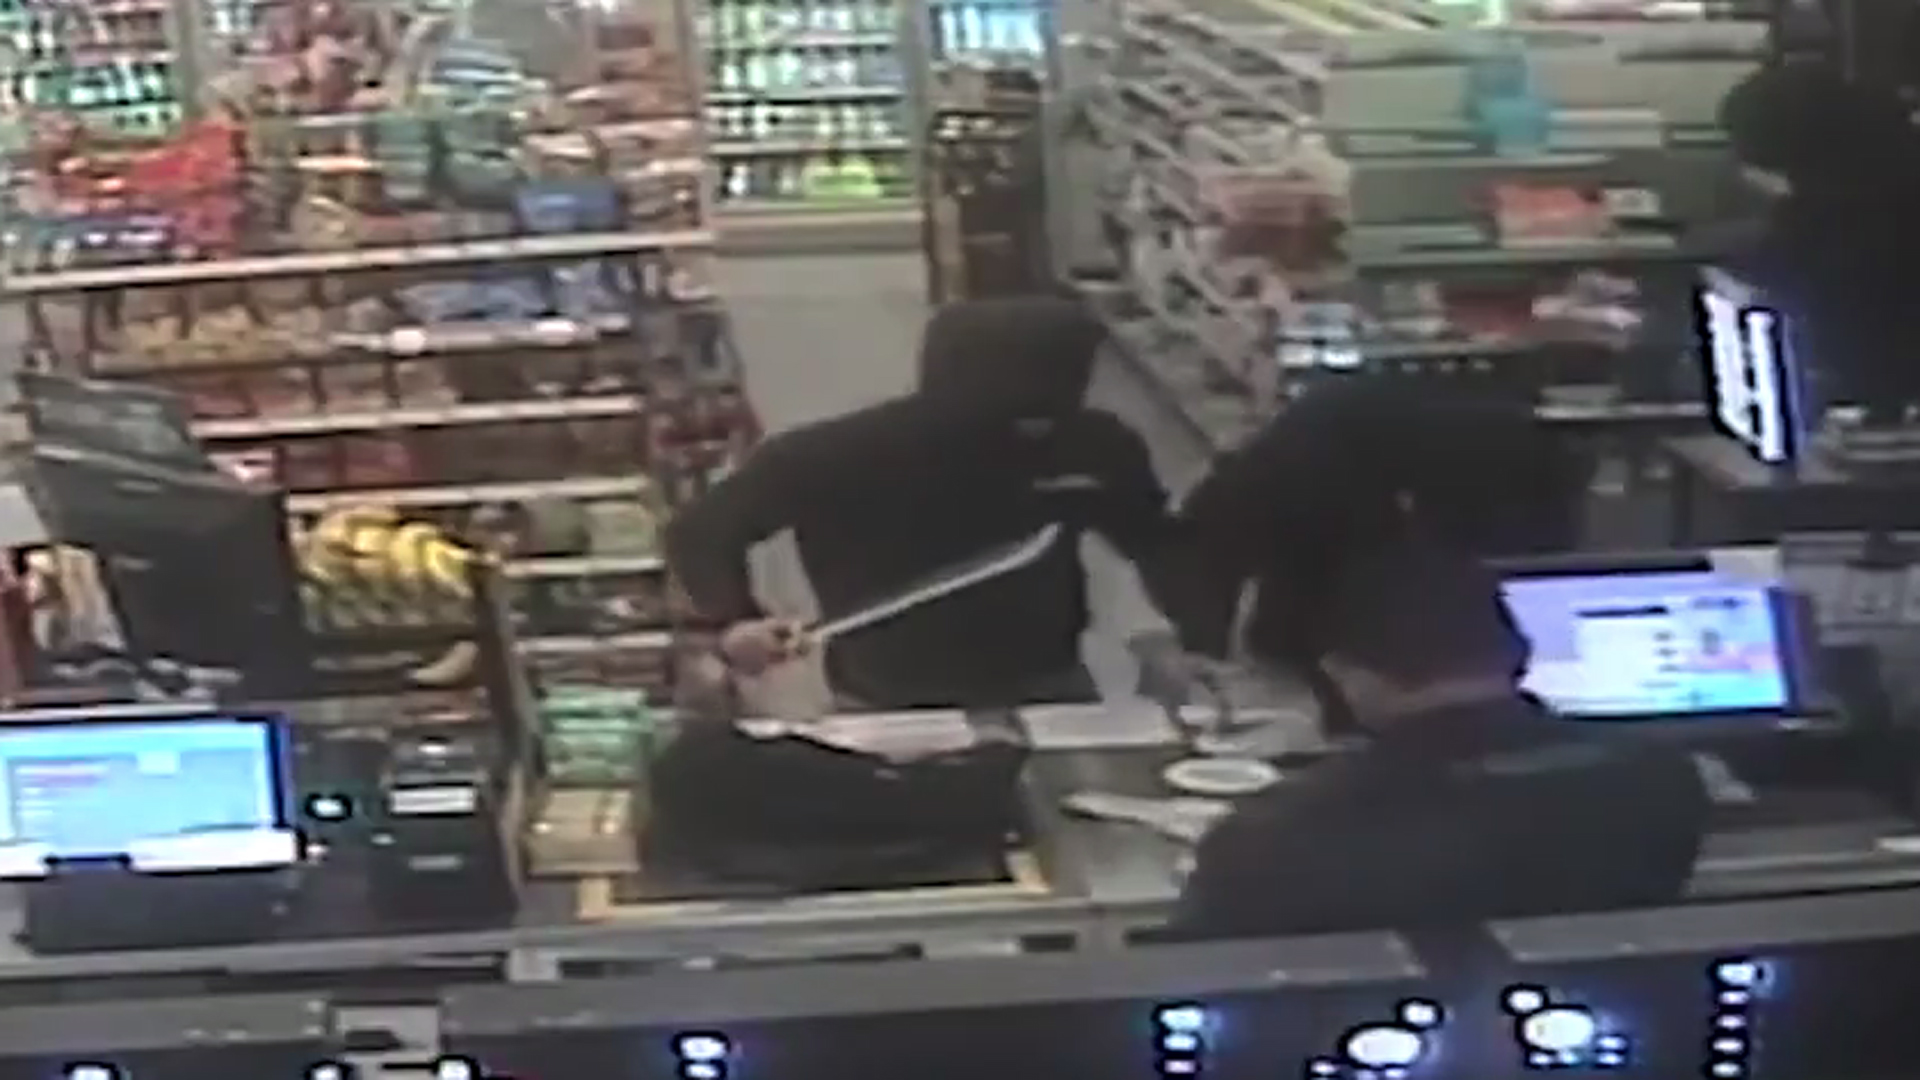 Three men armed with a machete and a knife robbed a Yorba Linda 7-Eleven store on Nov. 27, 2019. (Credit: Orange County Sheriff's Department)